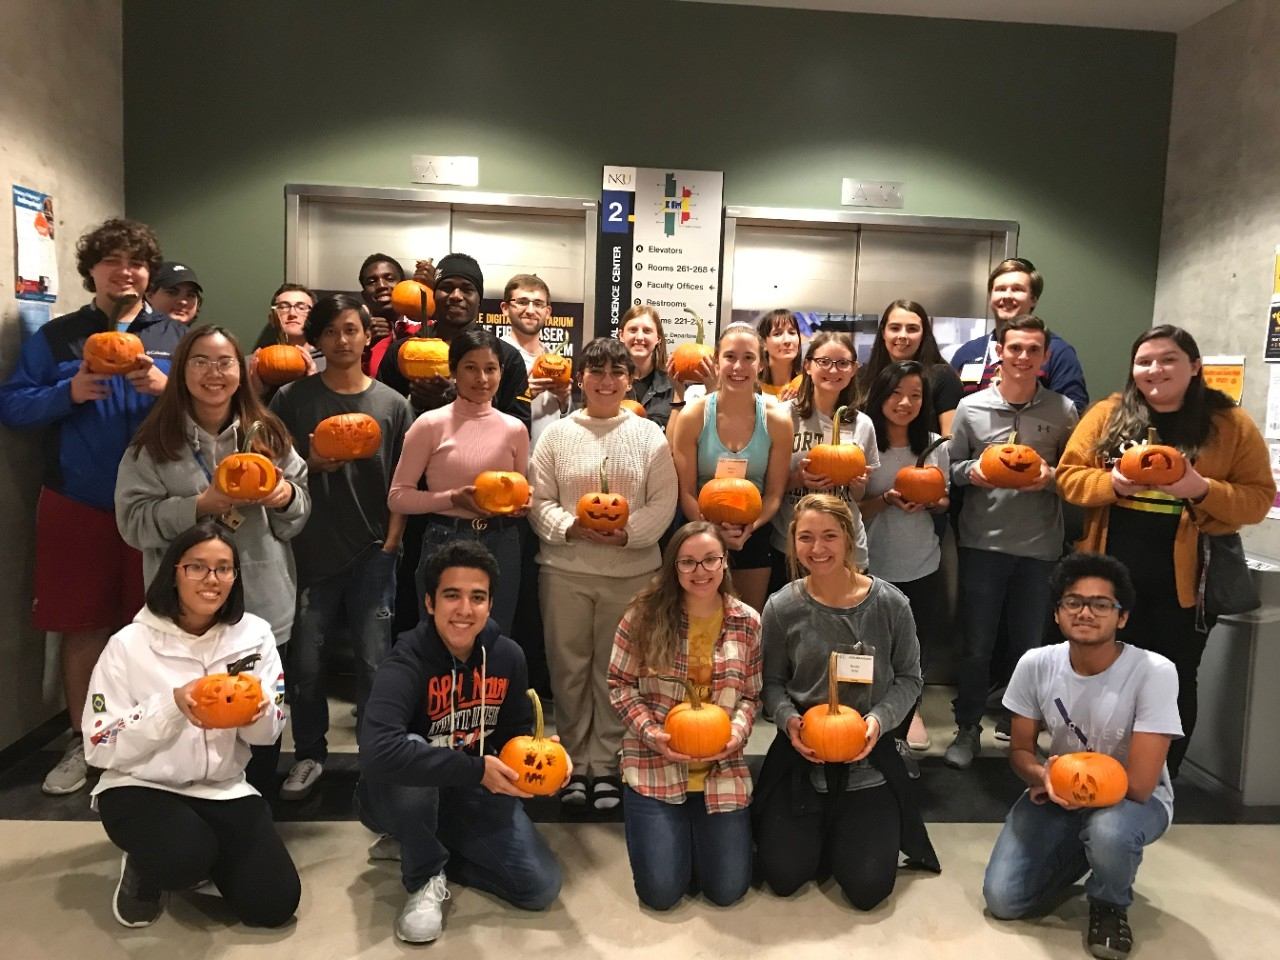 STEM students posing with their carved pumpkins at a pumpkin carving event